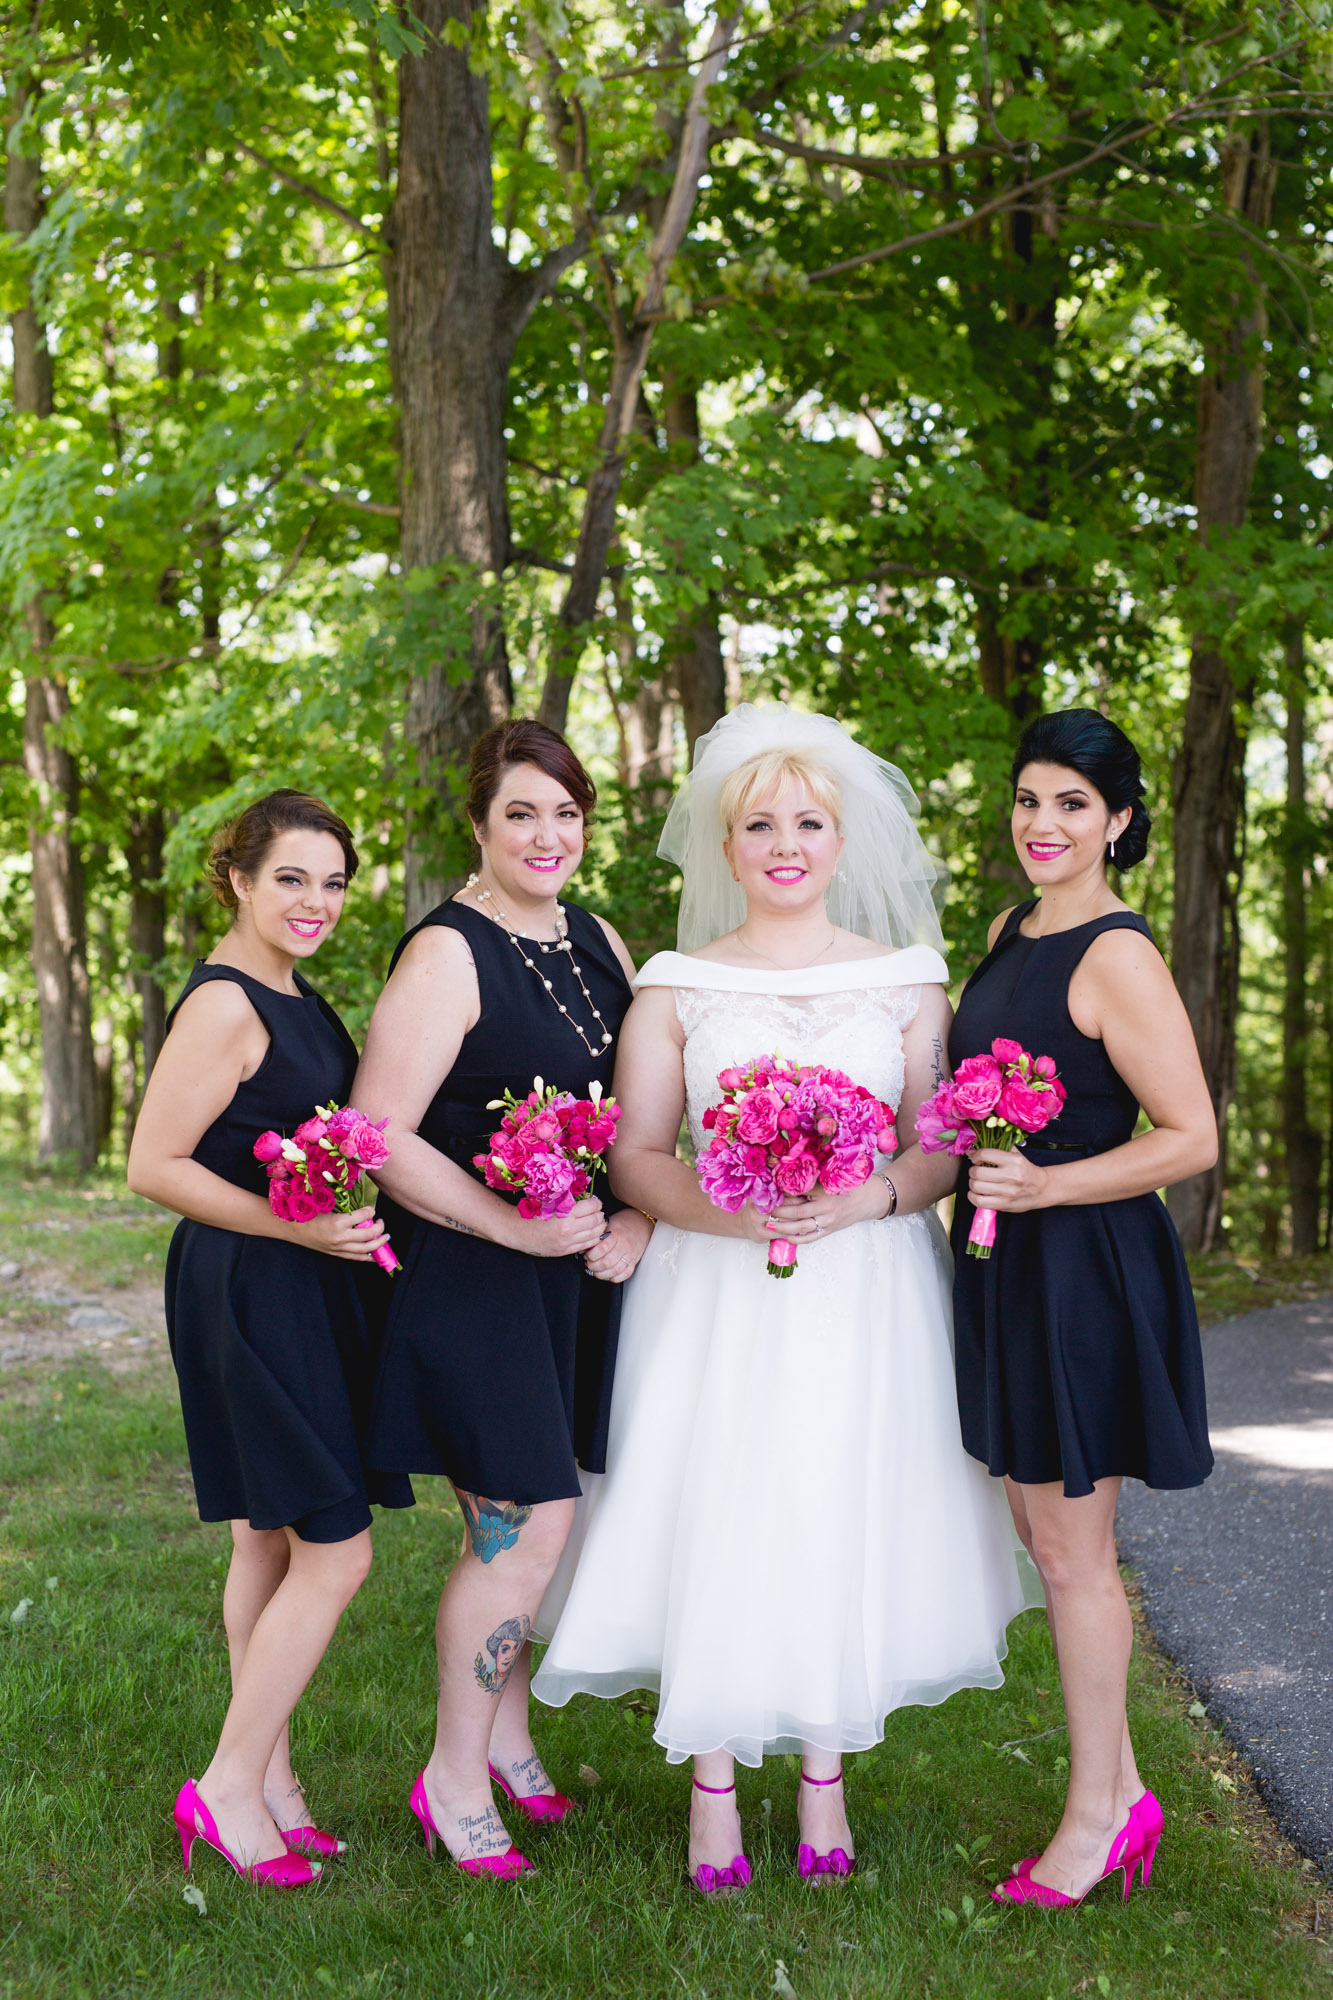 Caitlin & Joe's Stroudsmoor Woodsgate Wedding 10